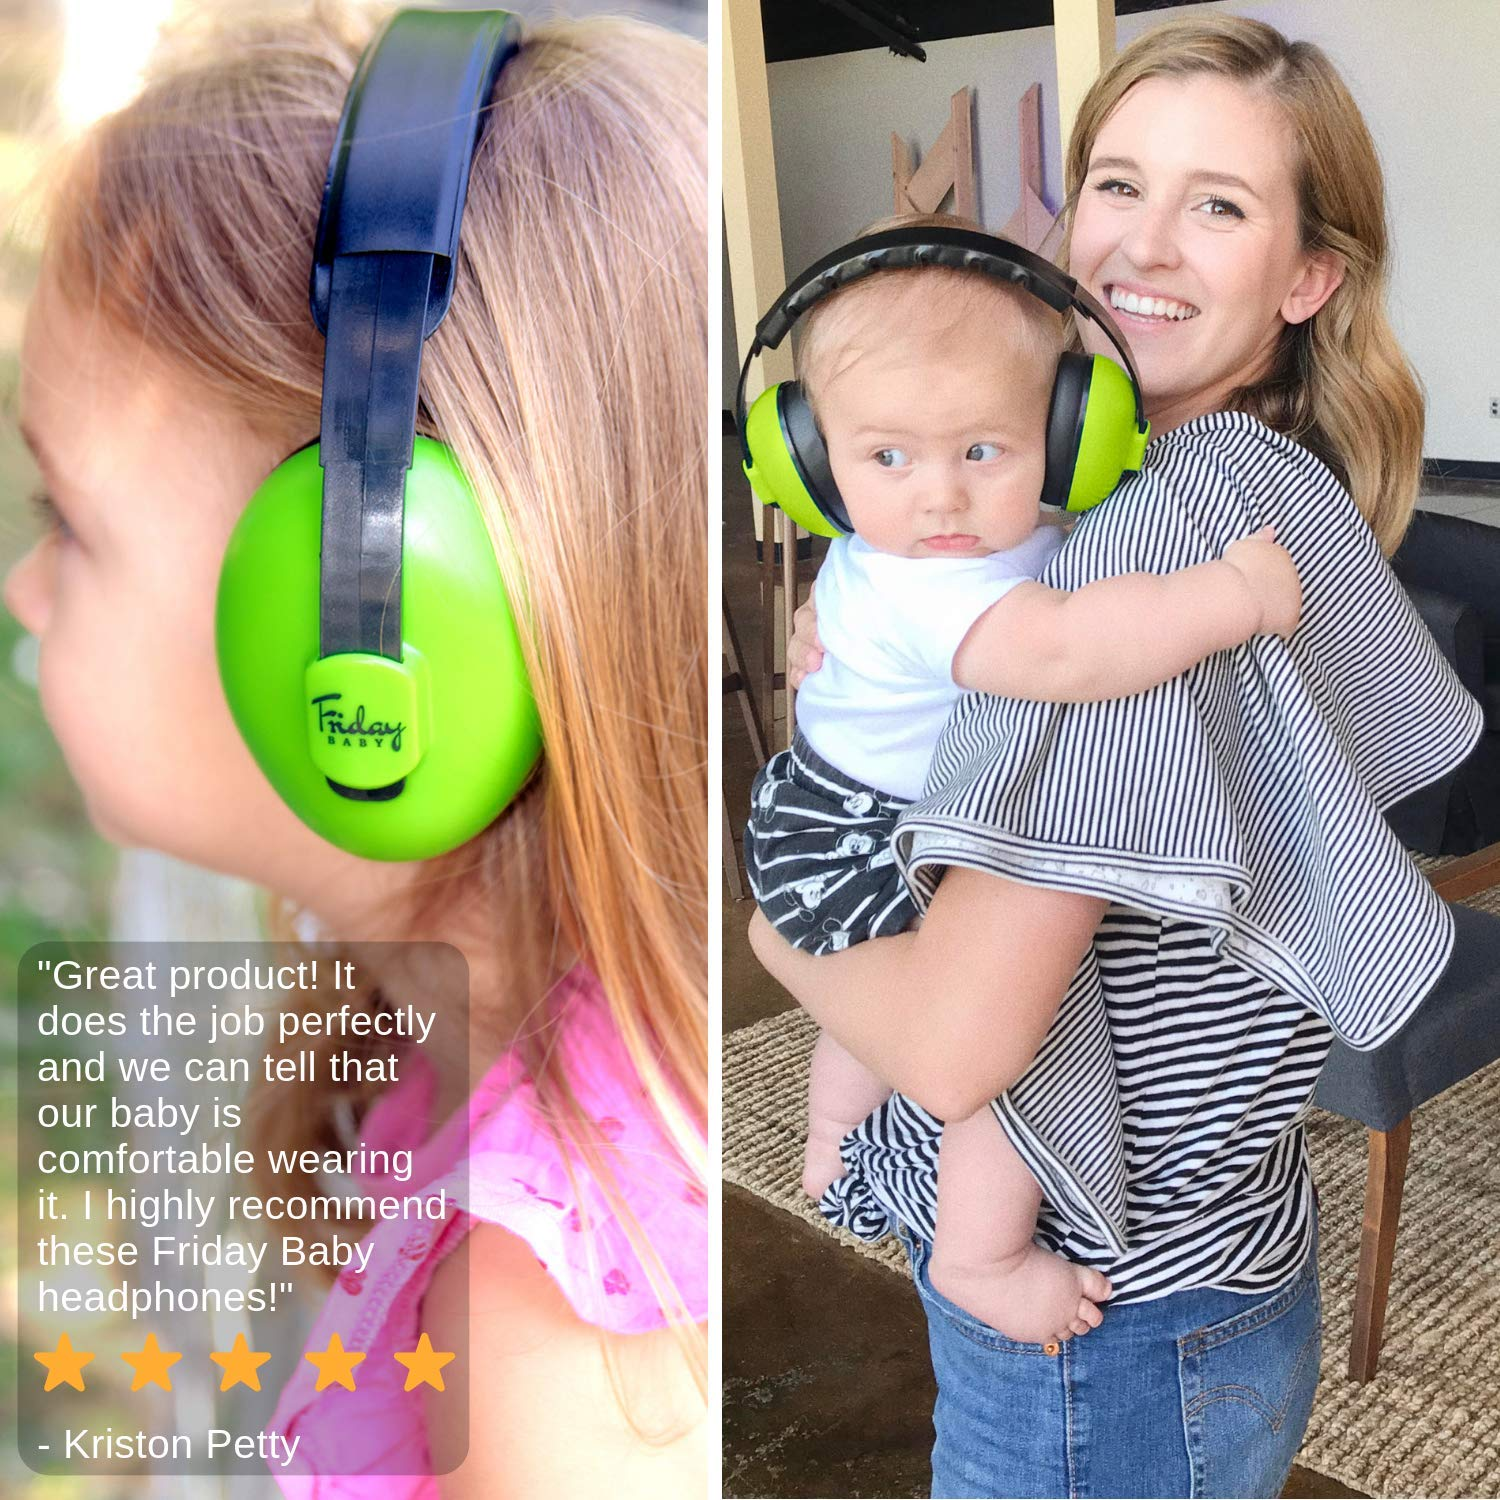 Fridaybaby Baby Ear Protection (0-2+ Years) - Comfortable and Adjustable Noise Cancelling Baby Ear Muffs for Infants & Newborns | Baby Headphones Noise Reduction for Airplanes Fireworks Concert, Blue